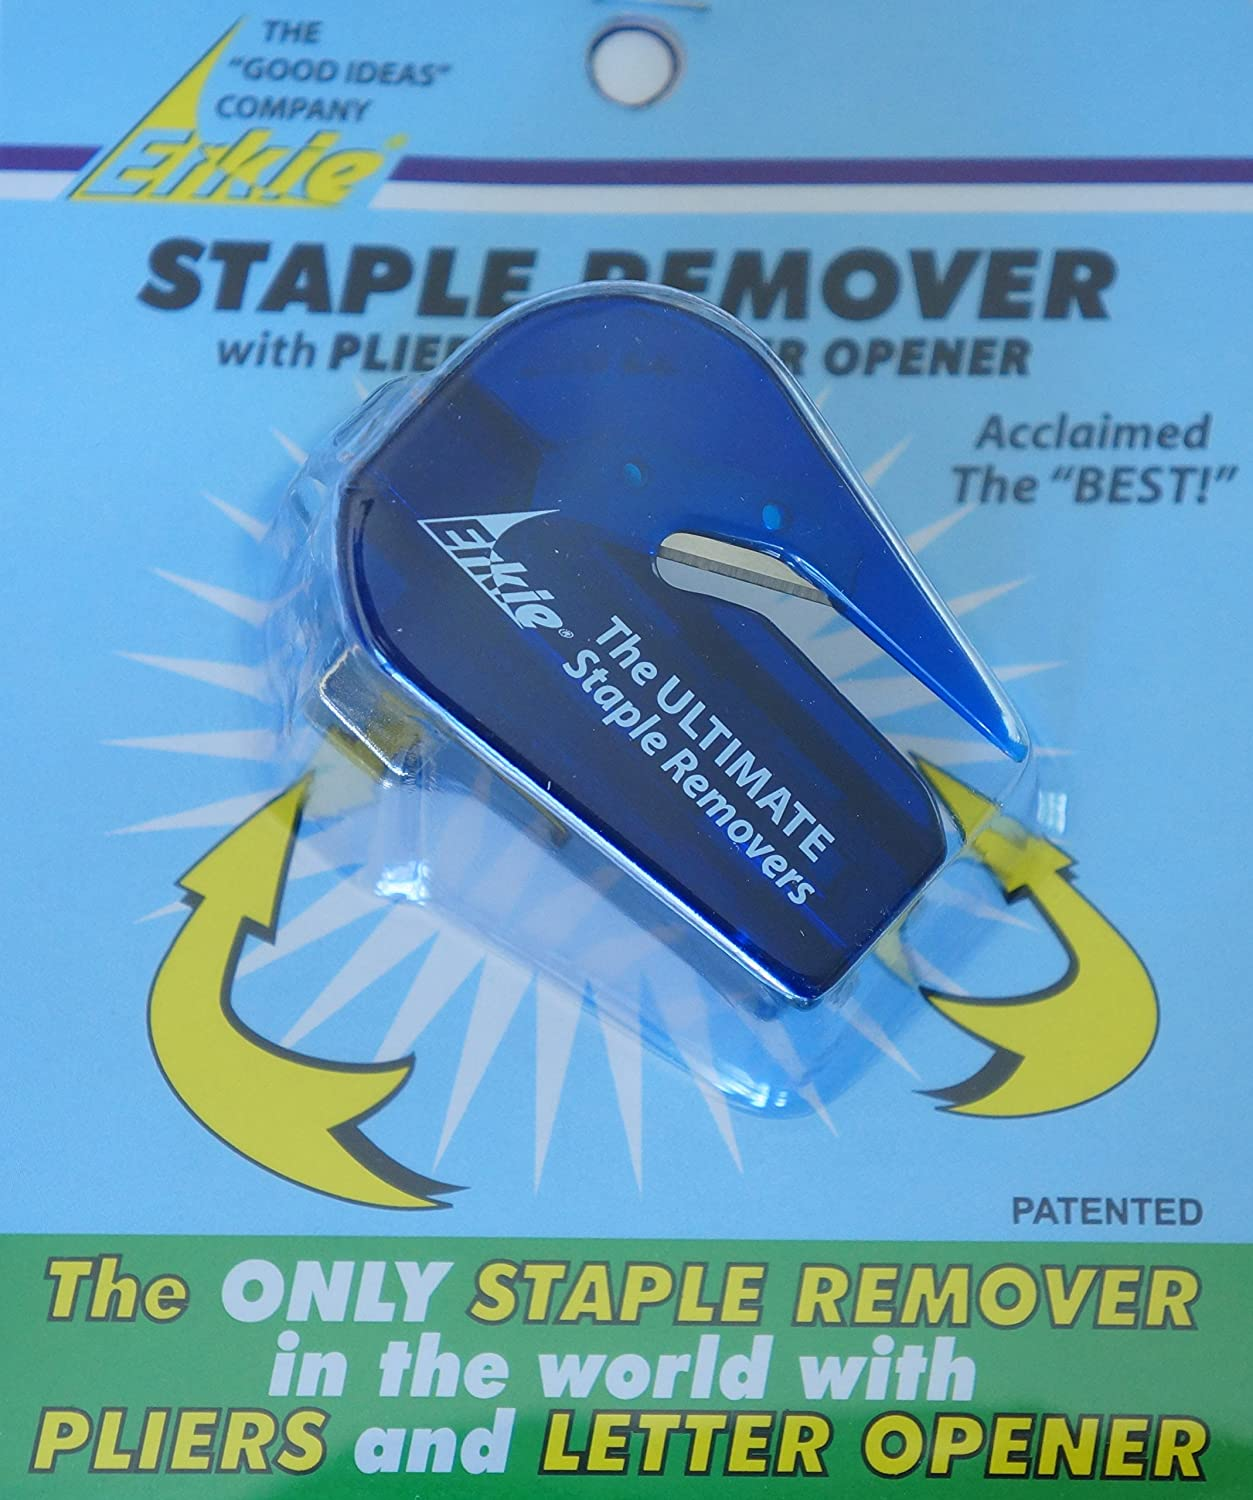 the ultimate erkie e staple remover with pliers and letter opener the only one in the